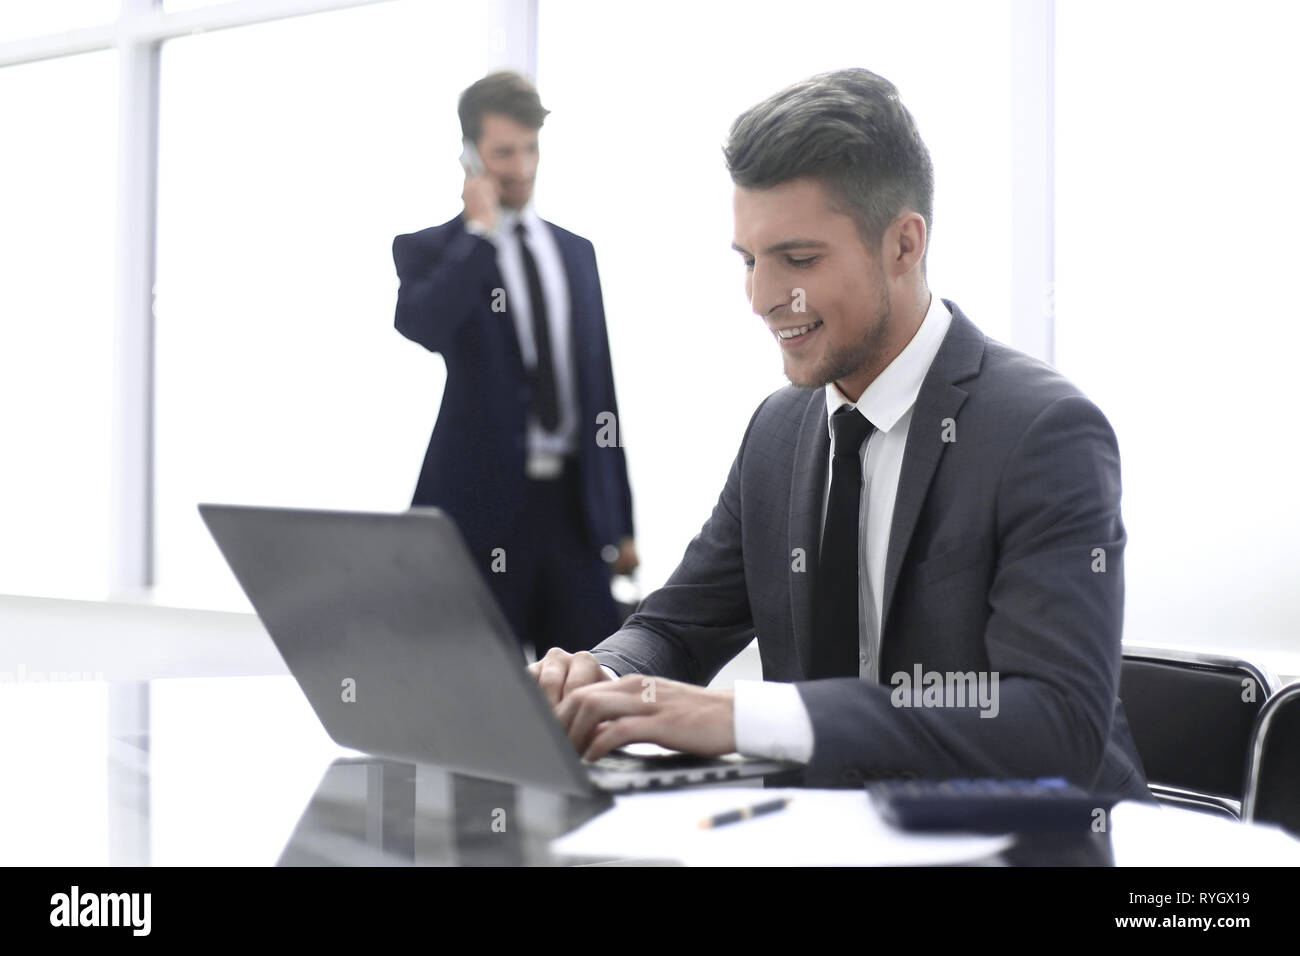 two accountants solve important issues - Stock Image